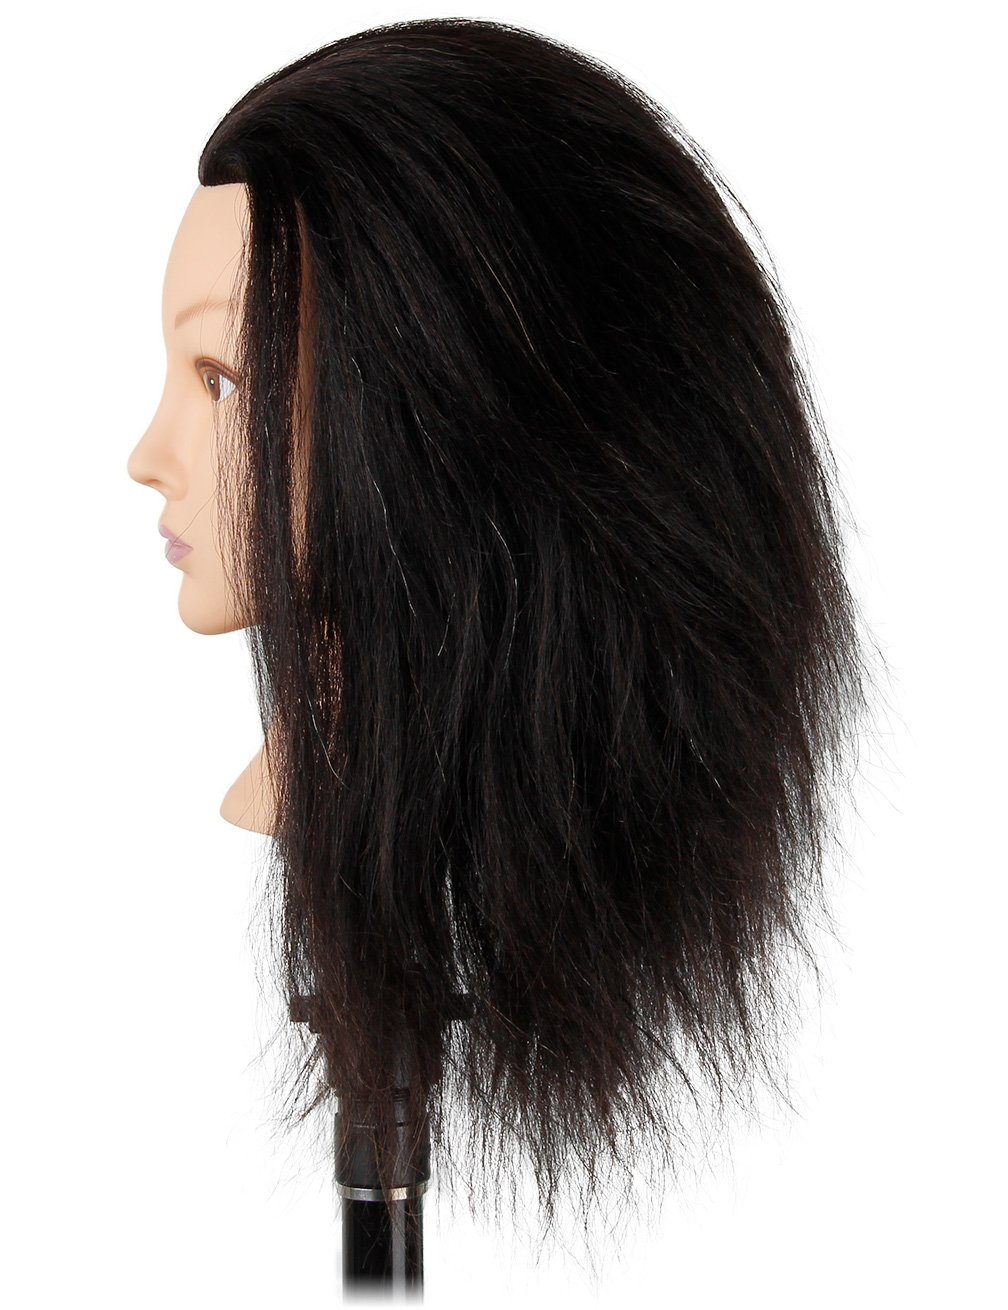 c97388a09f377 Cosmetology Afro Mannequin Head with Hair for Braiding Cornrow or Practice  Sew in on Hair Doll Head Manikins Kalyx Beauty Collection